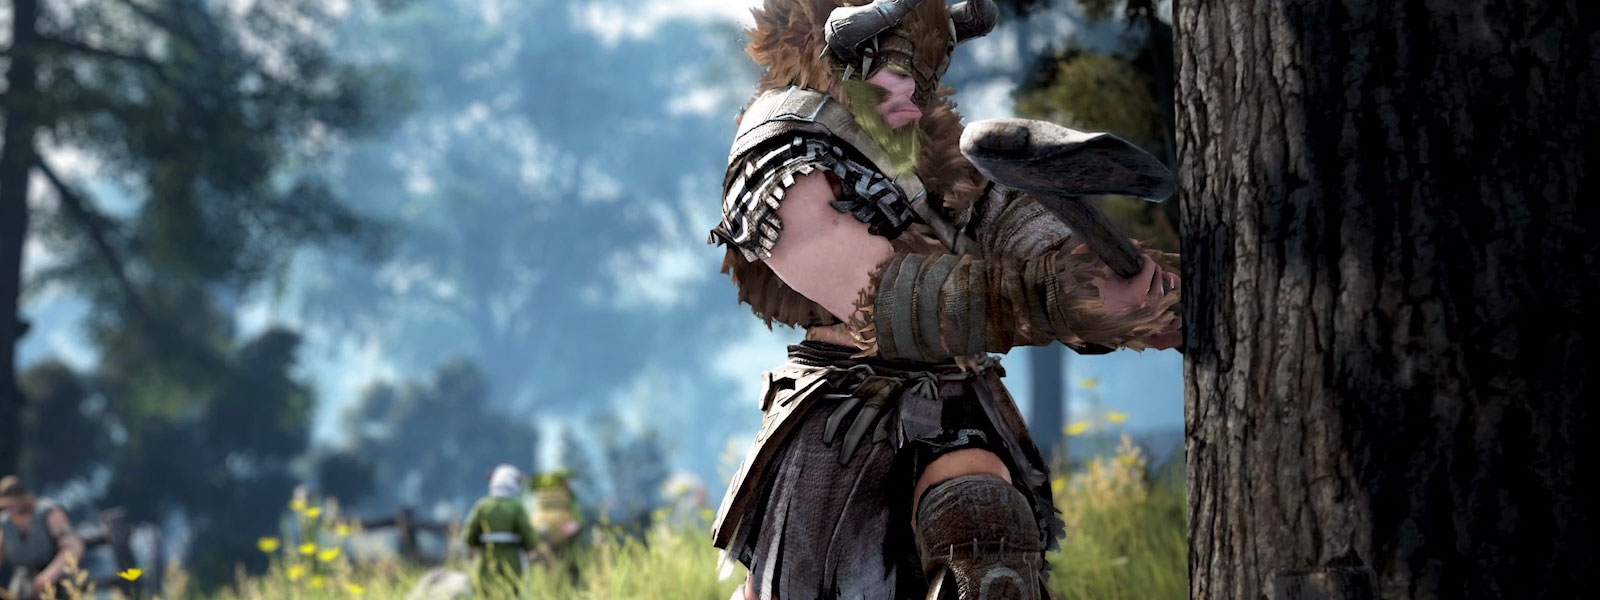 front view of black desert character swinging axe to chop down tree